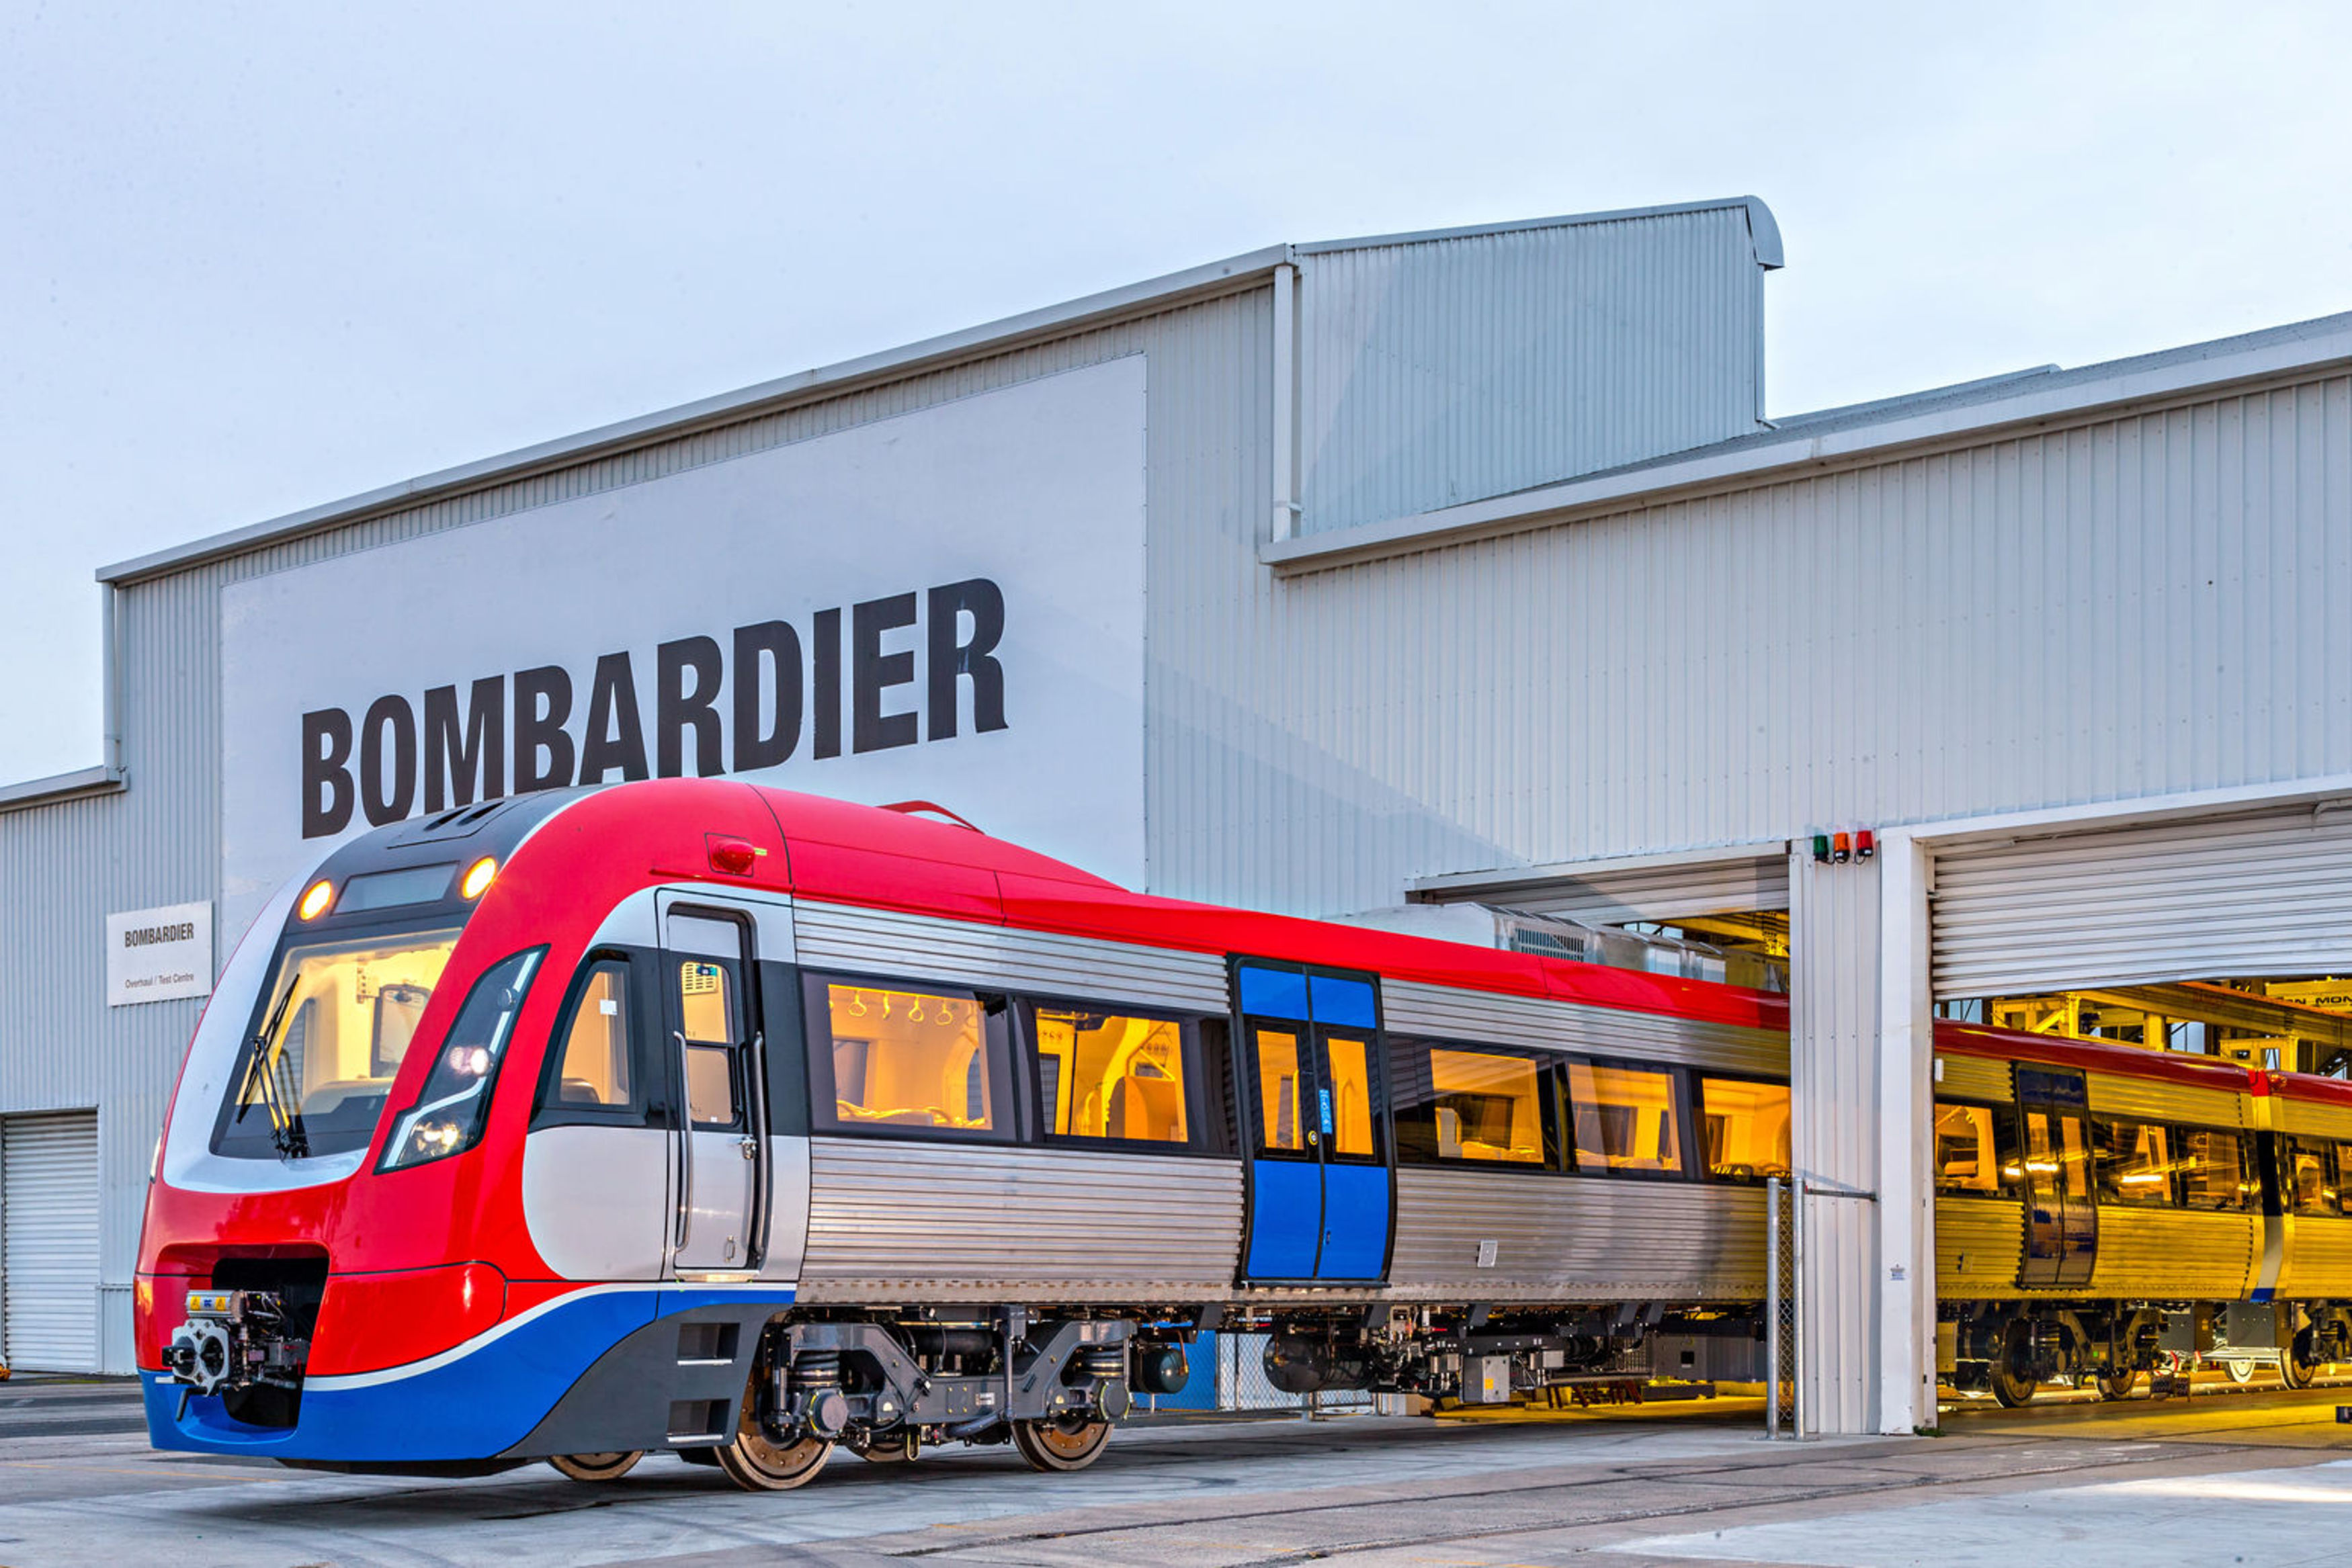 Adelaide commuter car at Bombardier's Dandenong site near Melbourne, Victoria